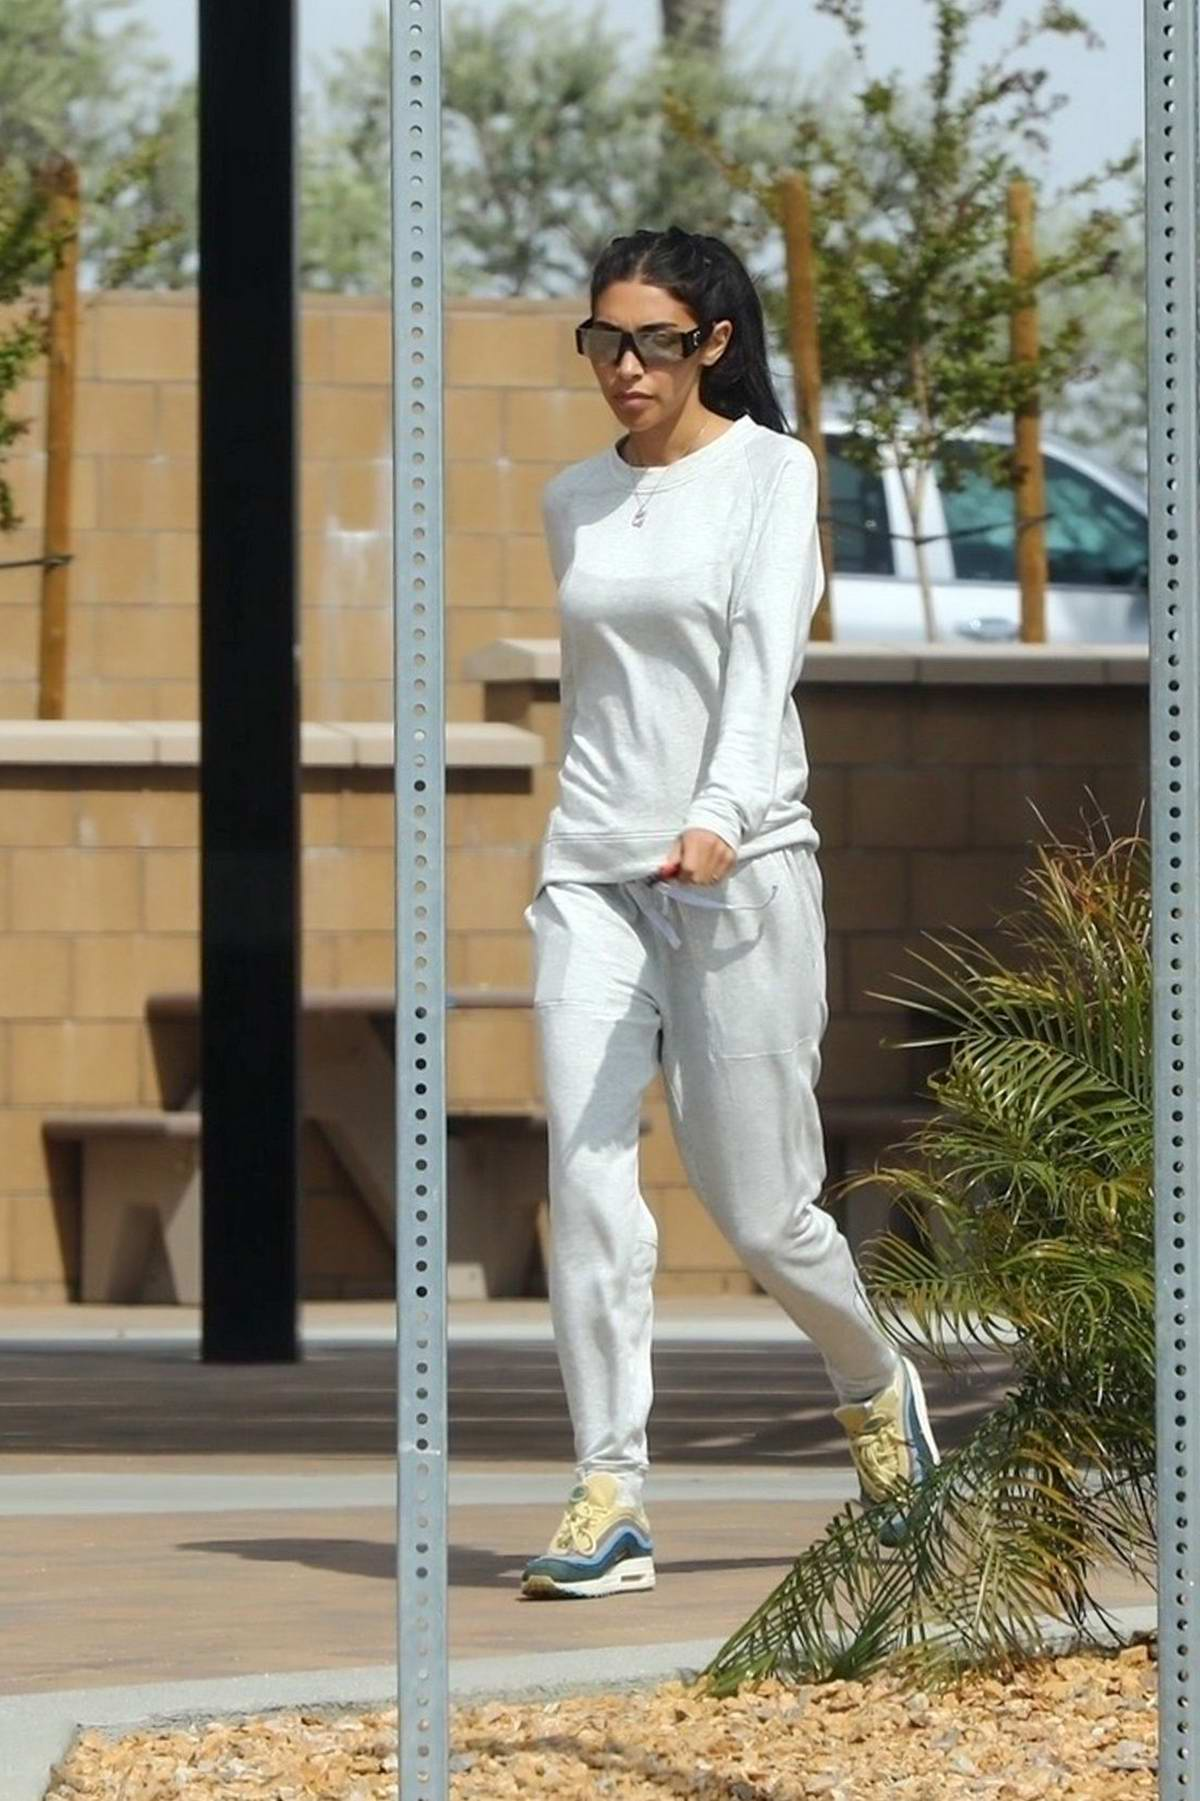 Chantel Jeffries stops for burritos at Chipotle Mexican Grill in Palm Springs, California